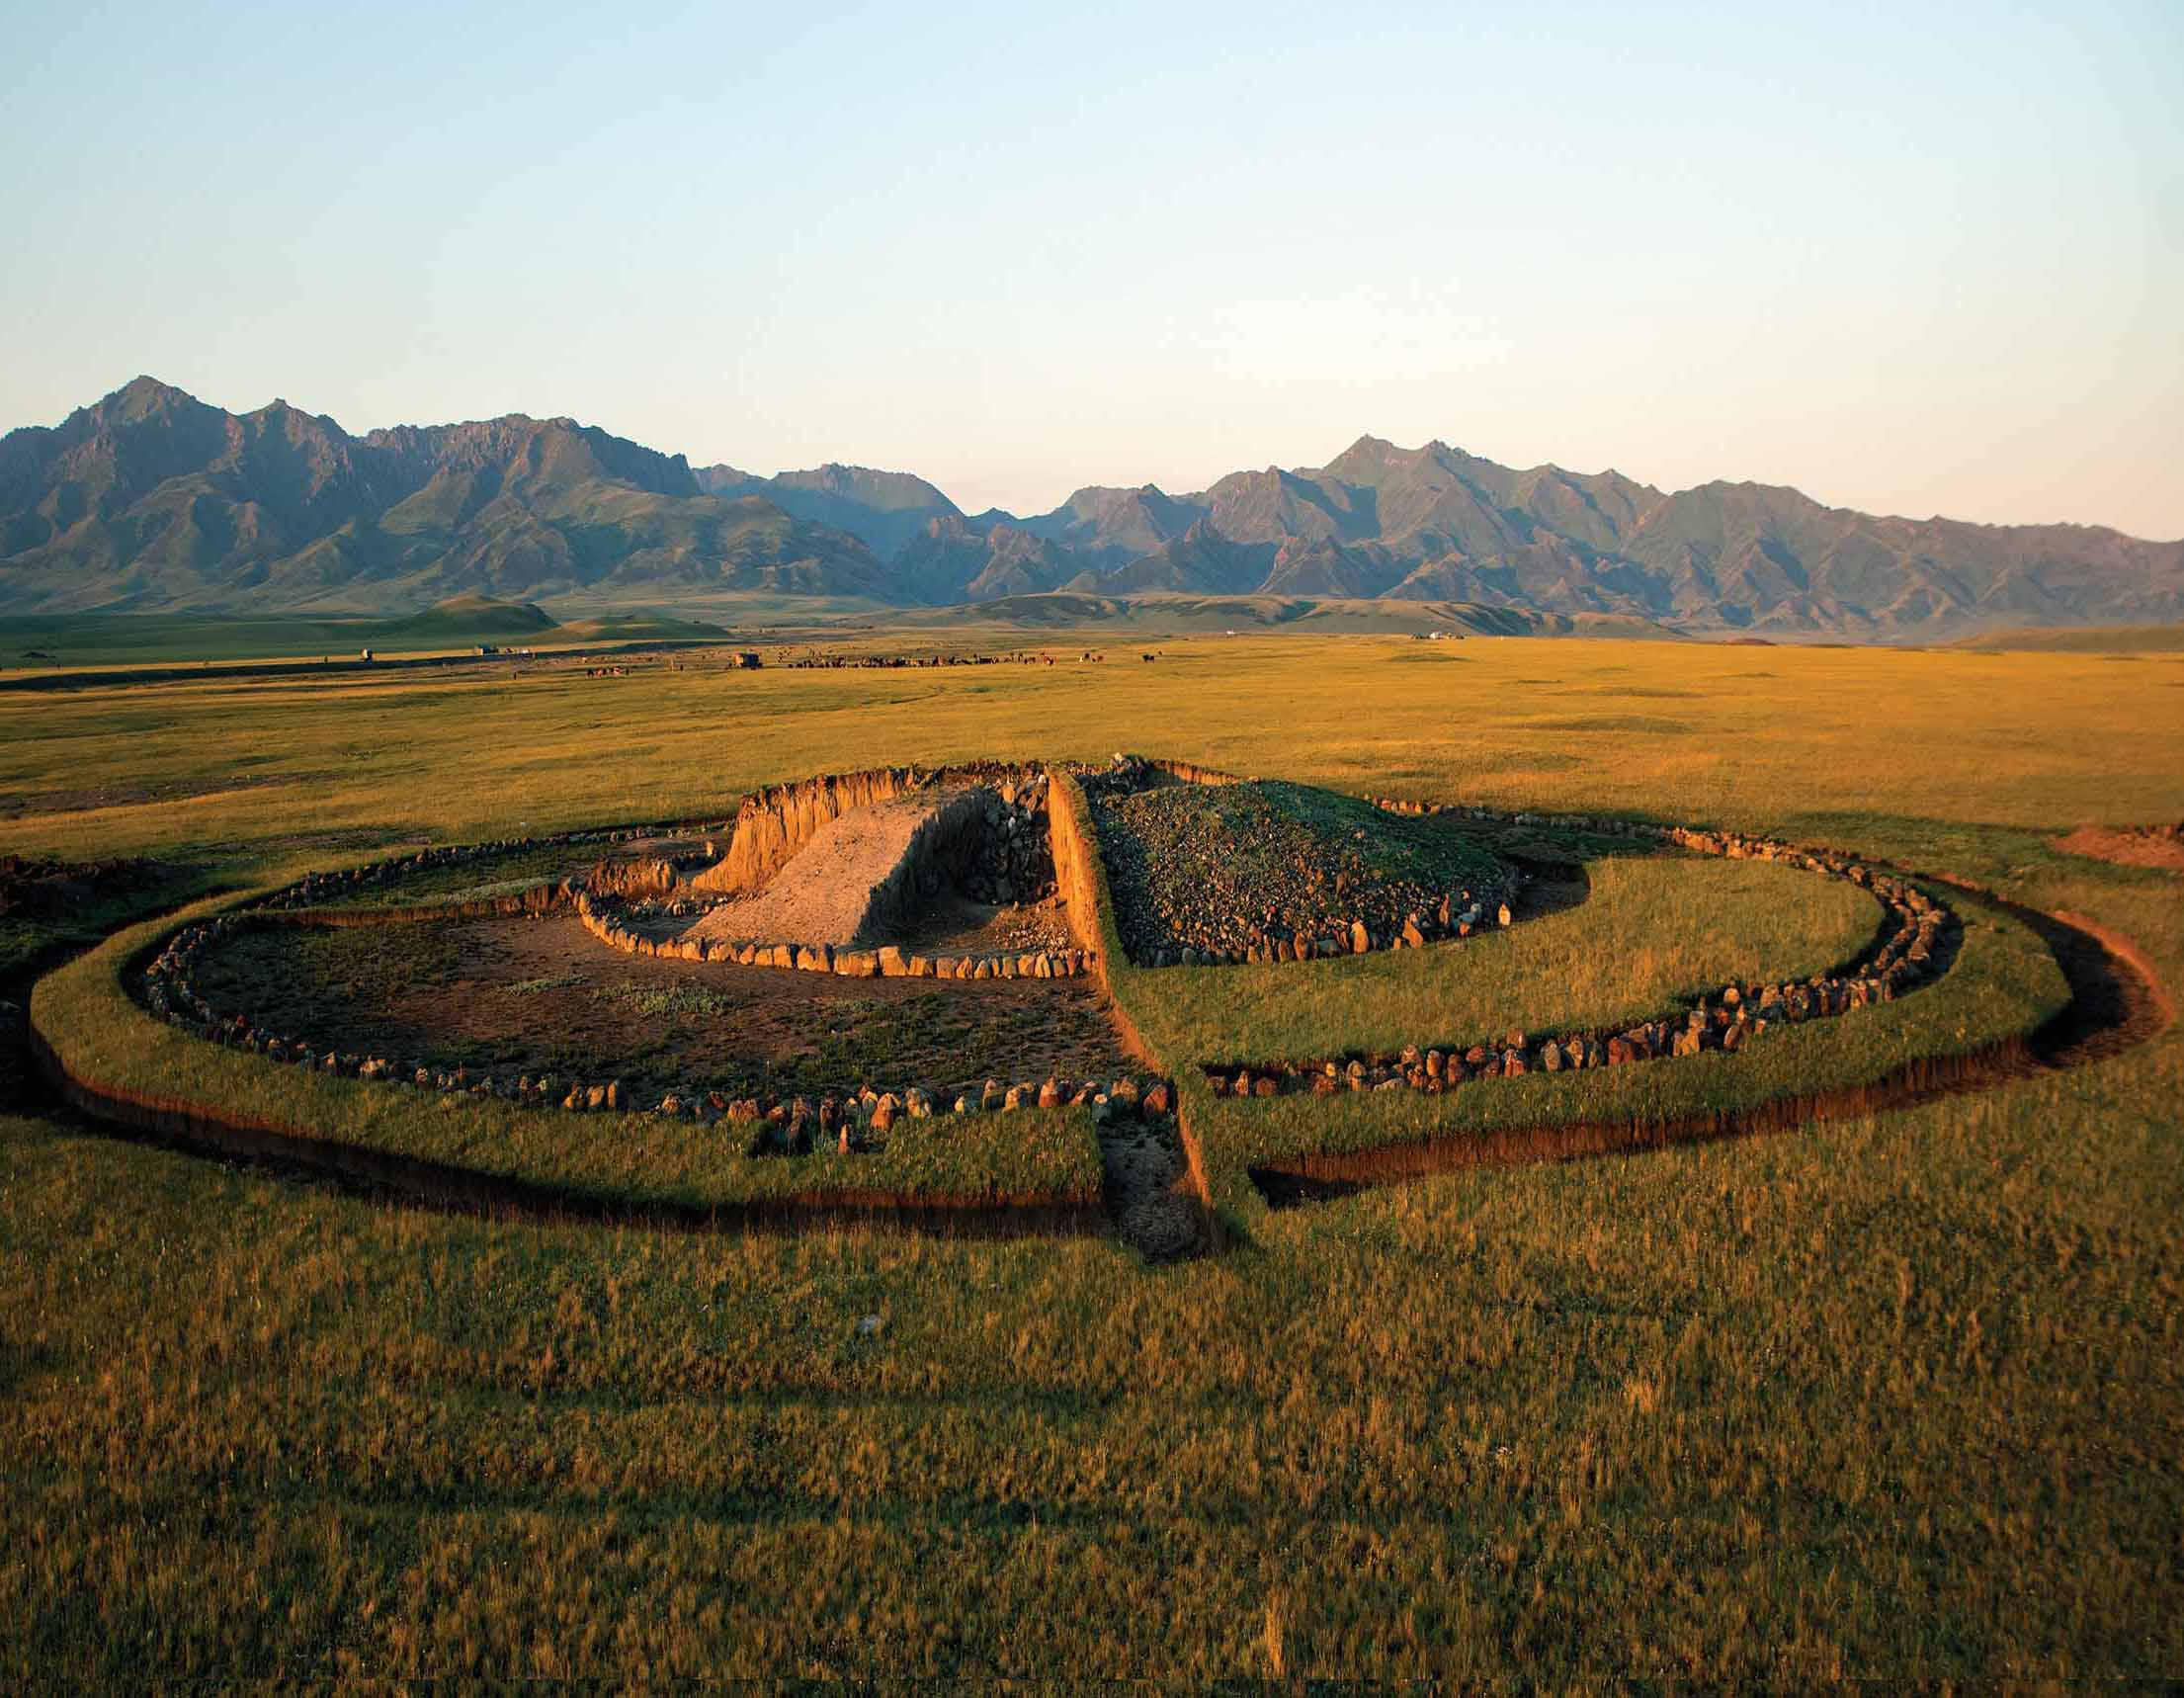 One of the burial mounds, kurgan, built by Saka culture people in eastern Kazakhstan where a horde of golden artefacts were discovered by archaeologists. Photograph: Megalara Garuda/PA